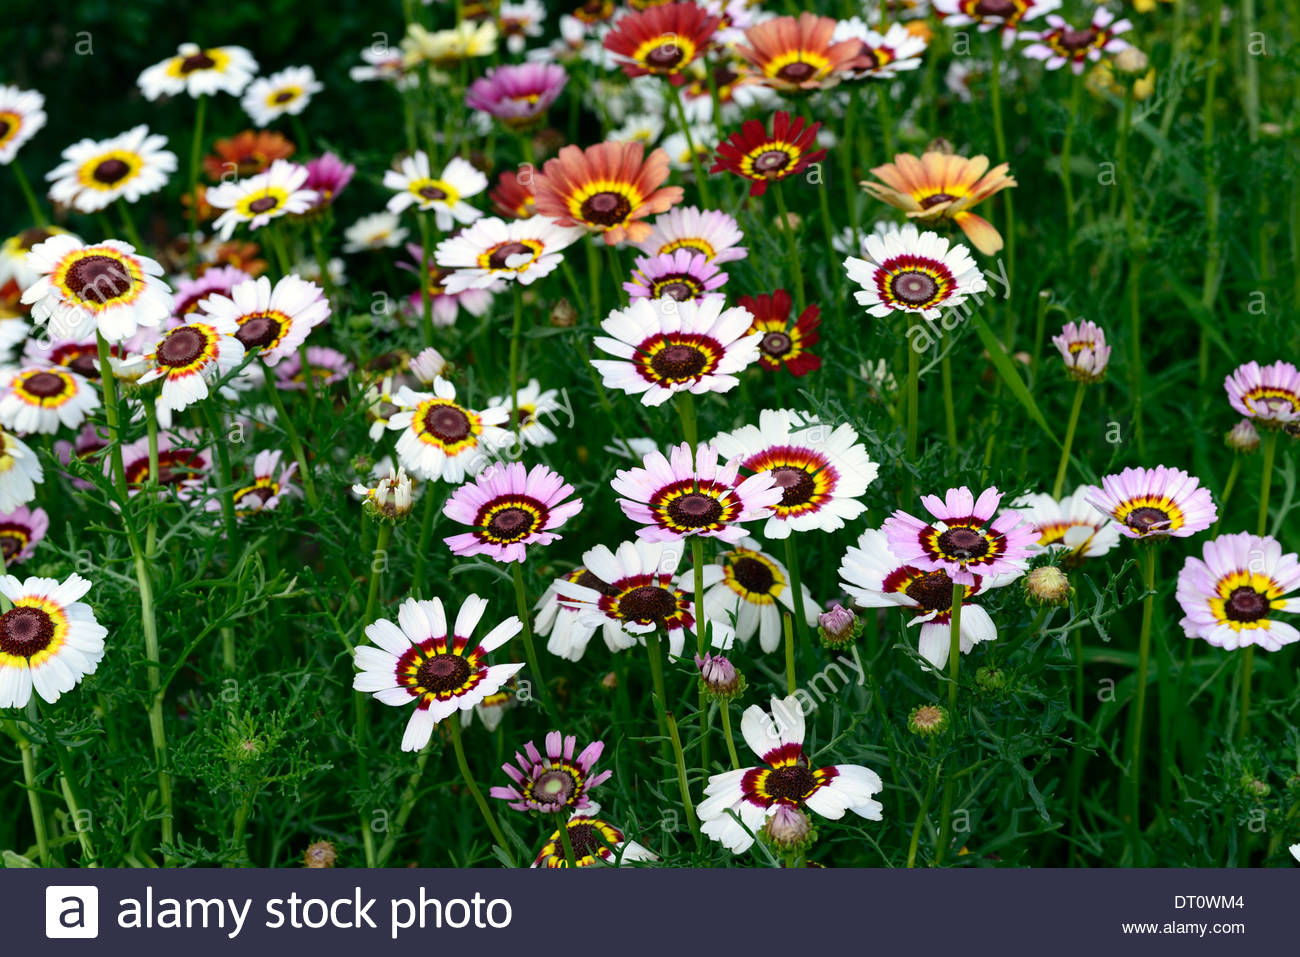 Painted Daisy Stock Photos & Painted Daisy Stock Images.